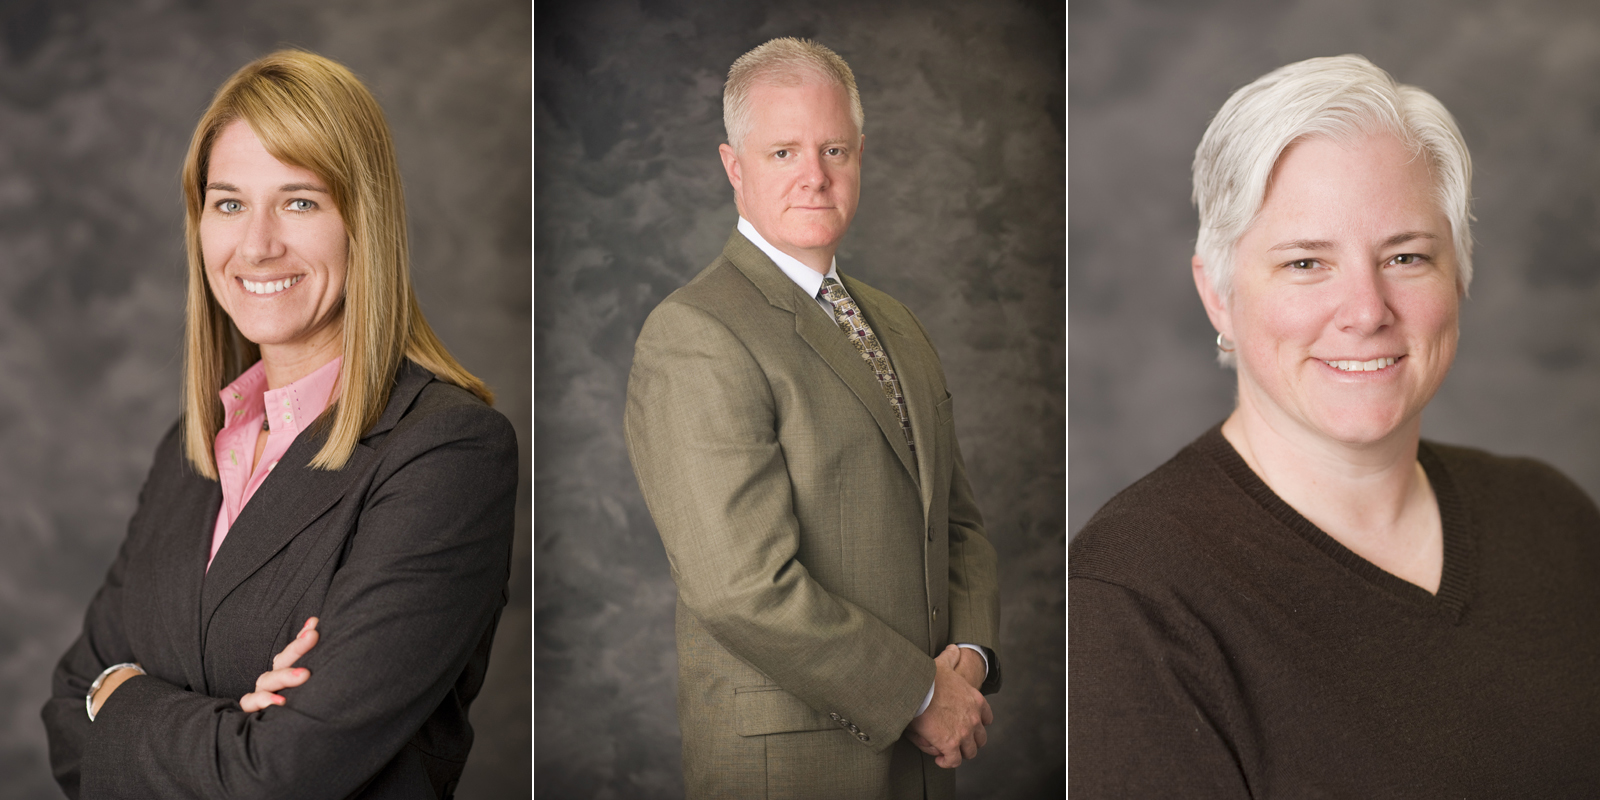 Ferris Law | Business Portraits & Headshots